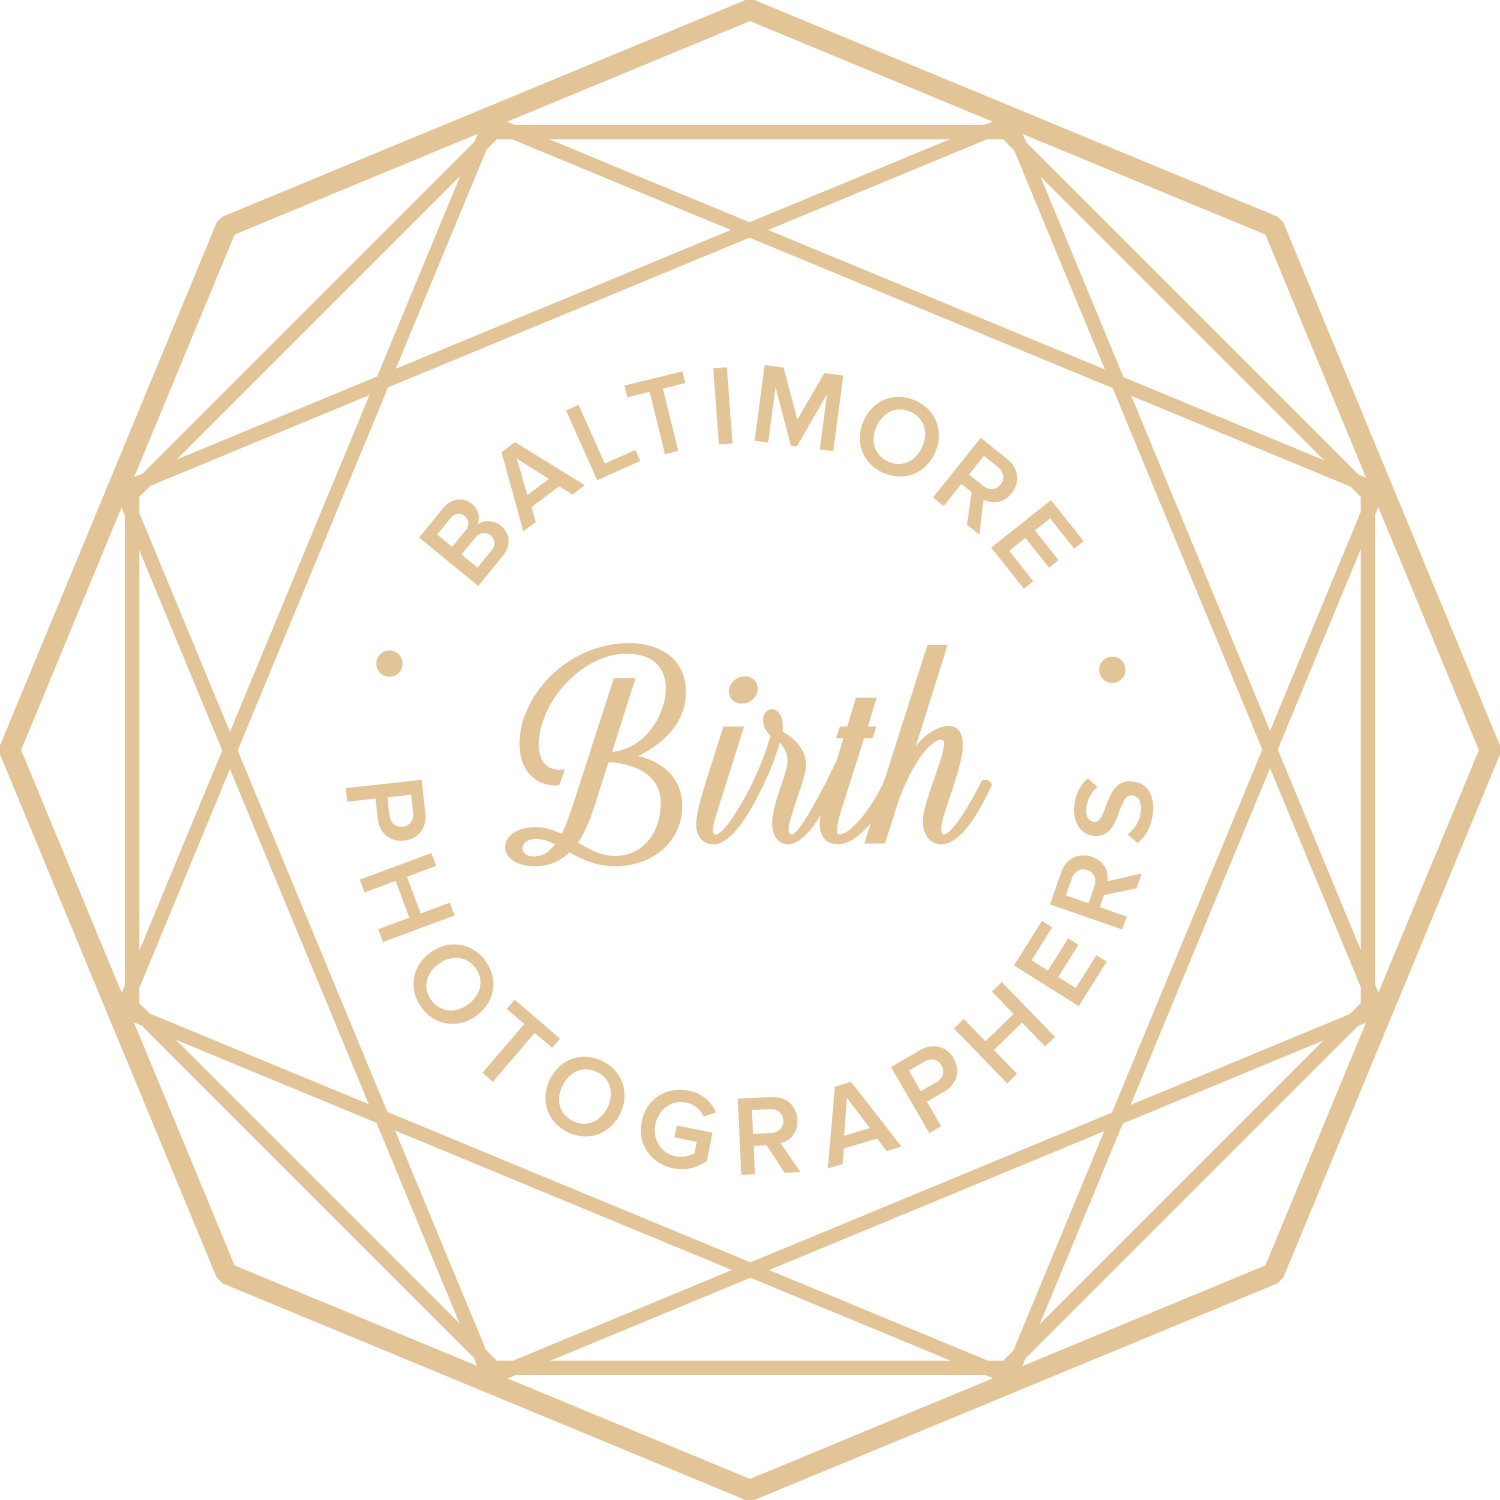 Baltimore Birth Photographers